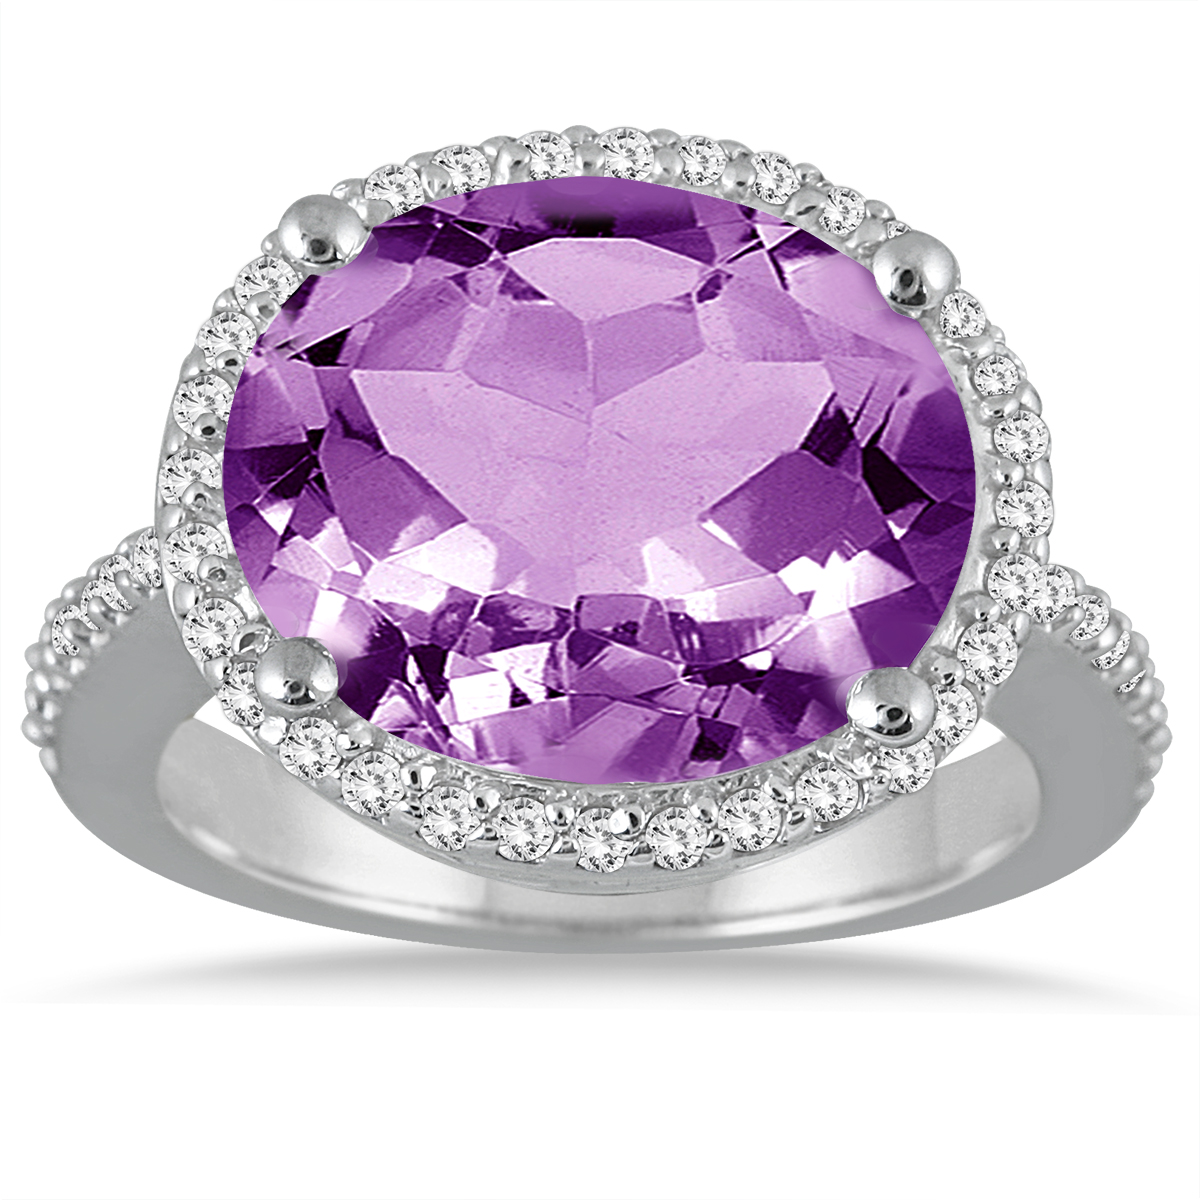 8 Carat Oval Amethyst and Diamond Ring in 14K White Gold